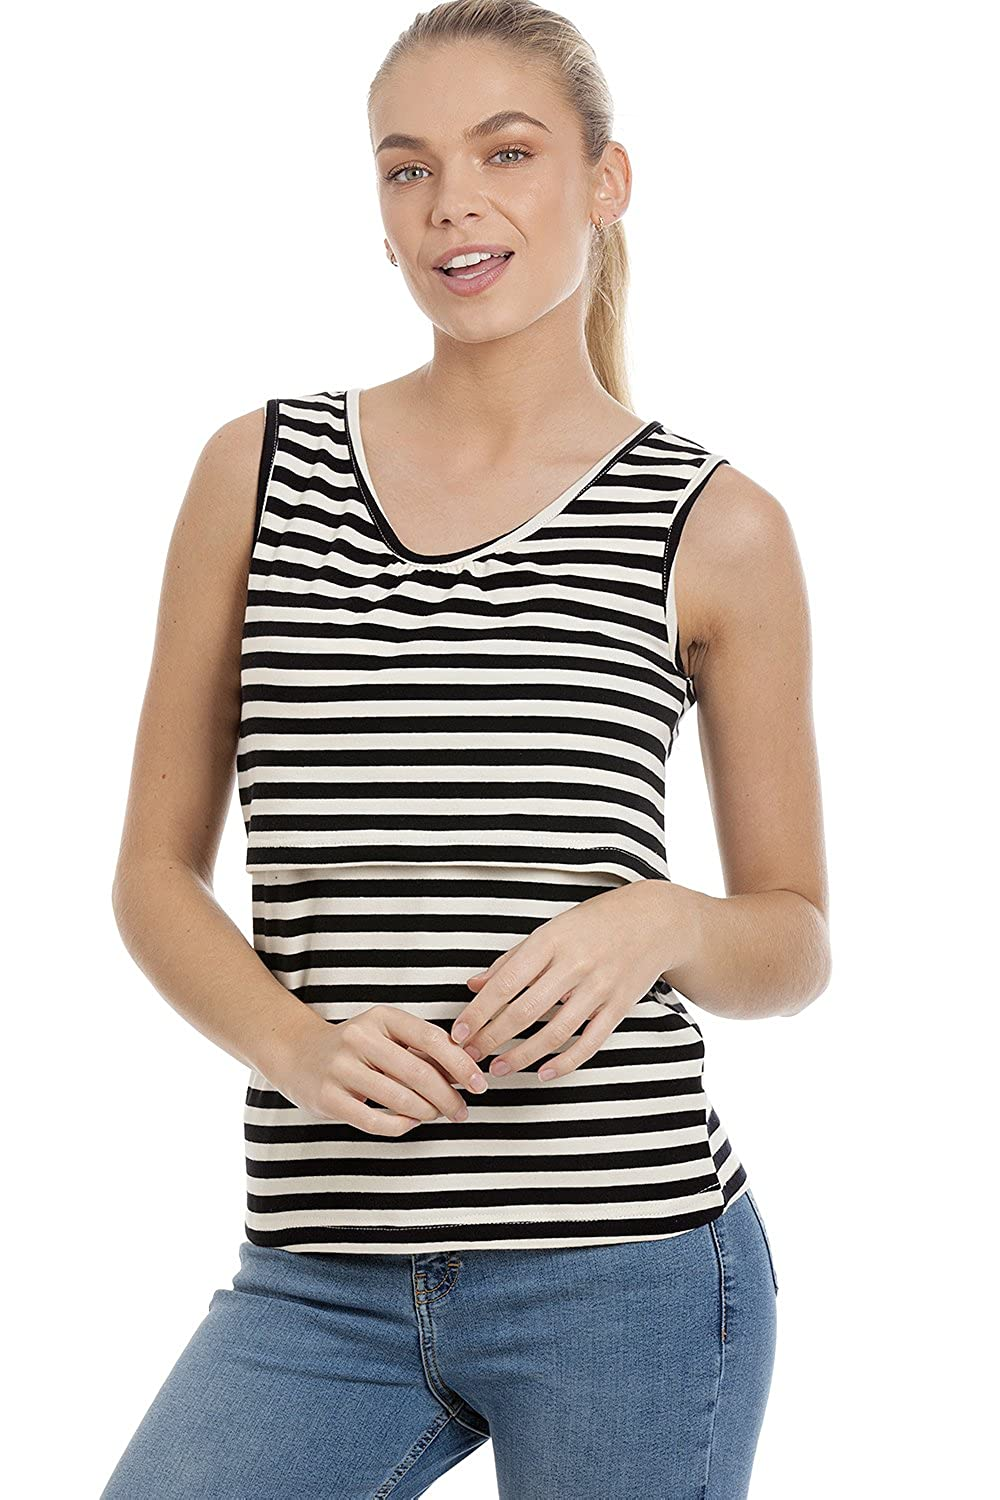 Central Chic Damen Top